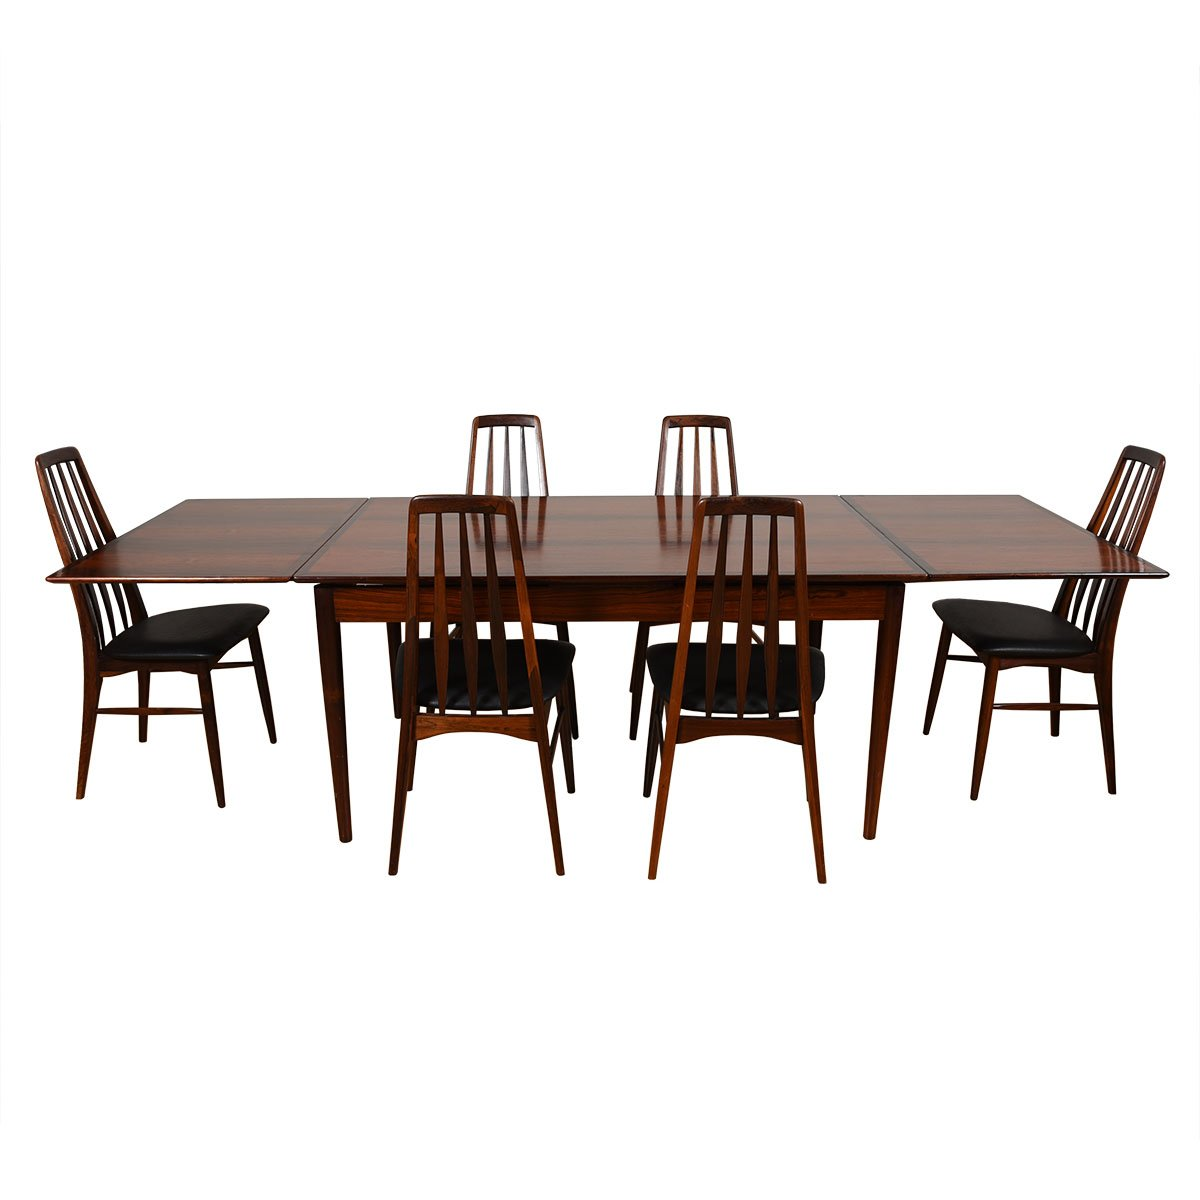 Mid-Sized Danish Modern Rosewood Expanding Dining Table.